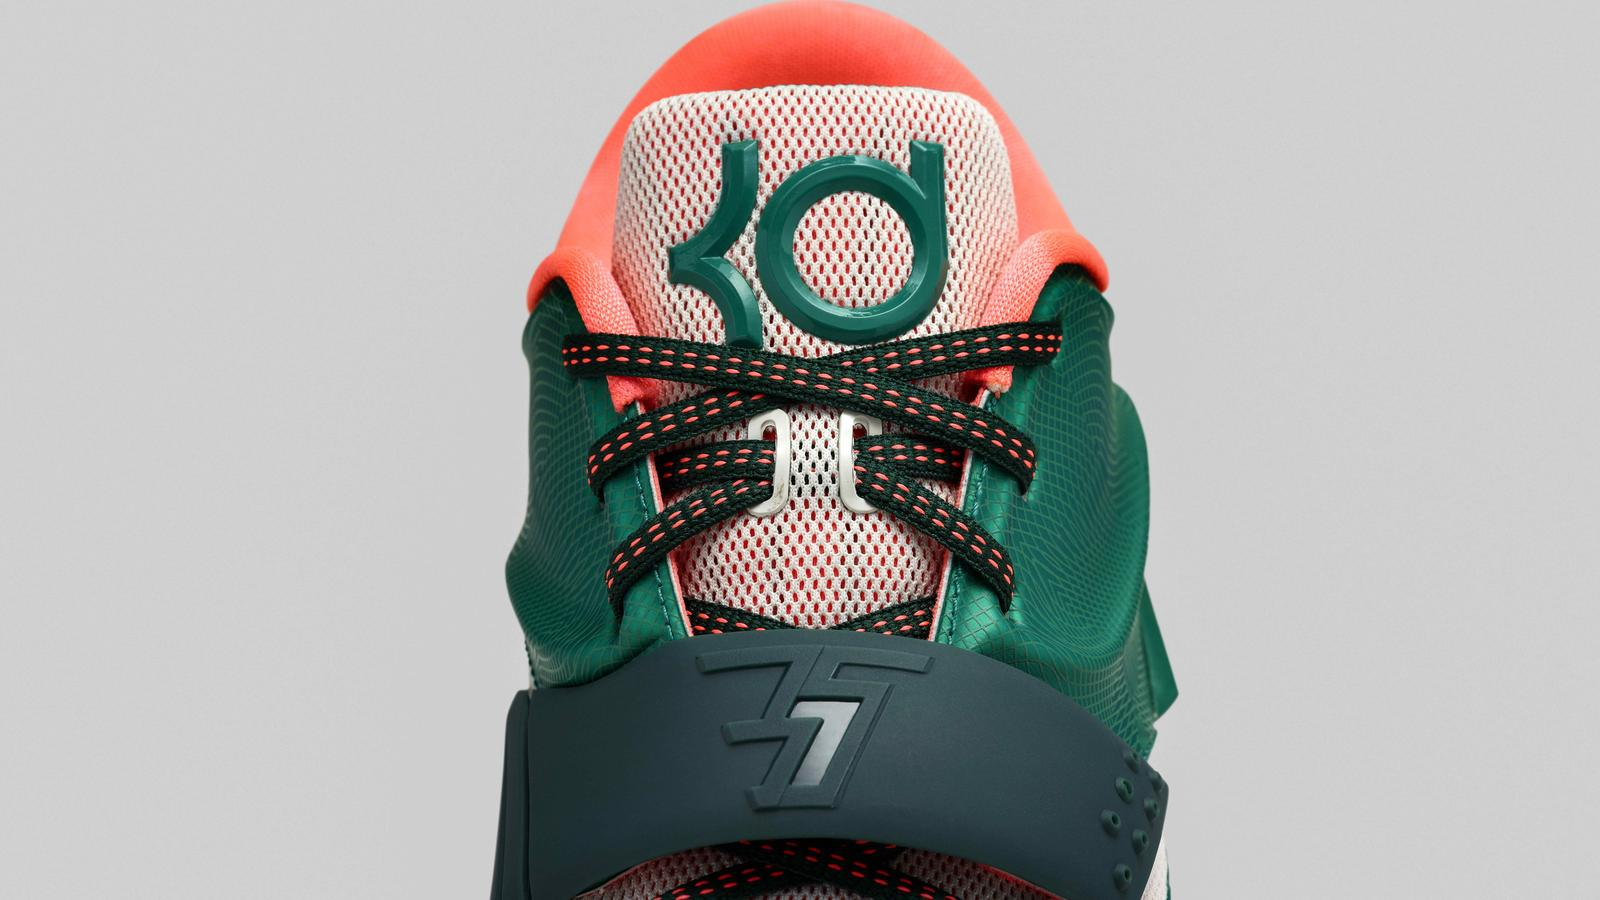 57327deab82 The KD7 fuses performance innovation with inspirations from Kevin Durant s  journey on and off the court. Durant s personal stories come to life  through ...